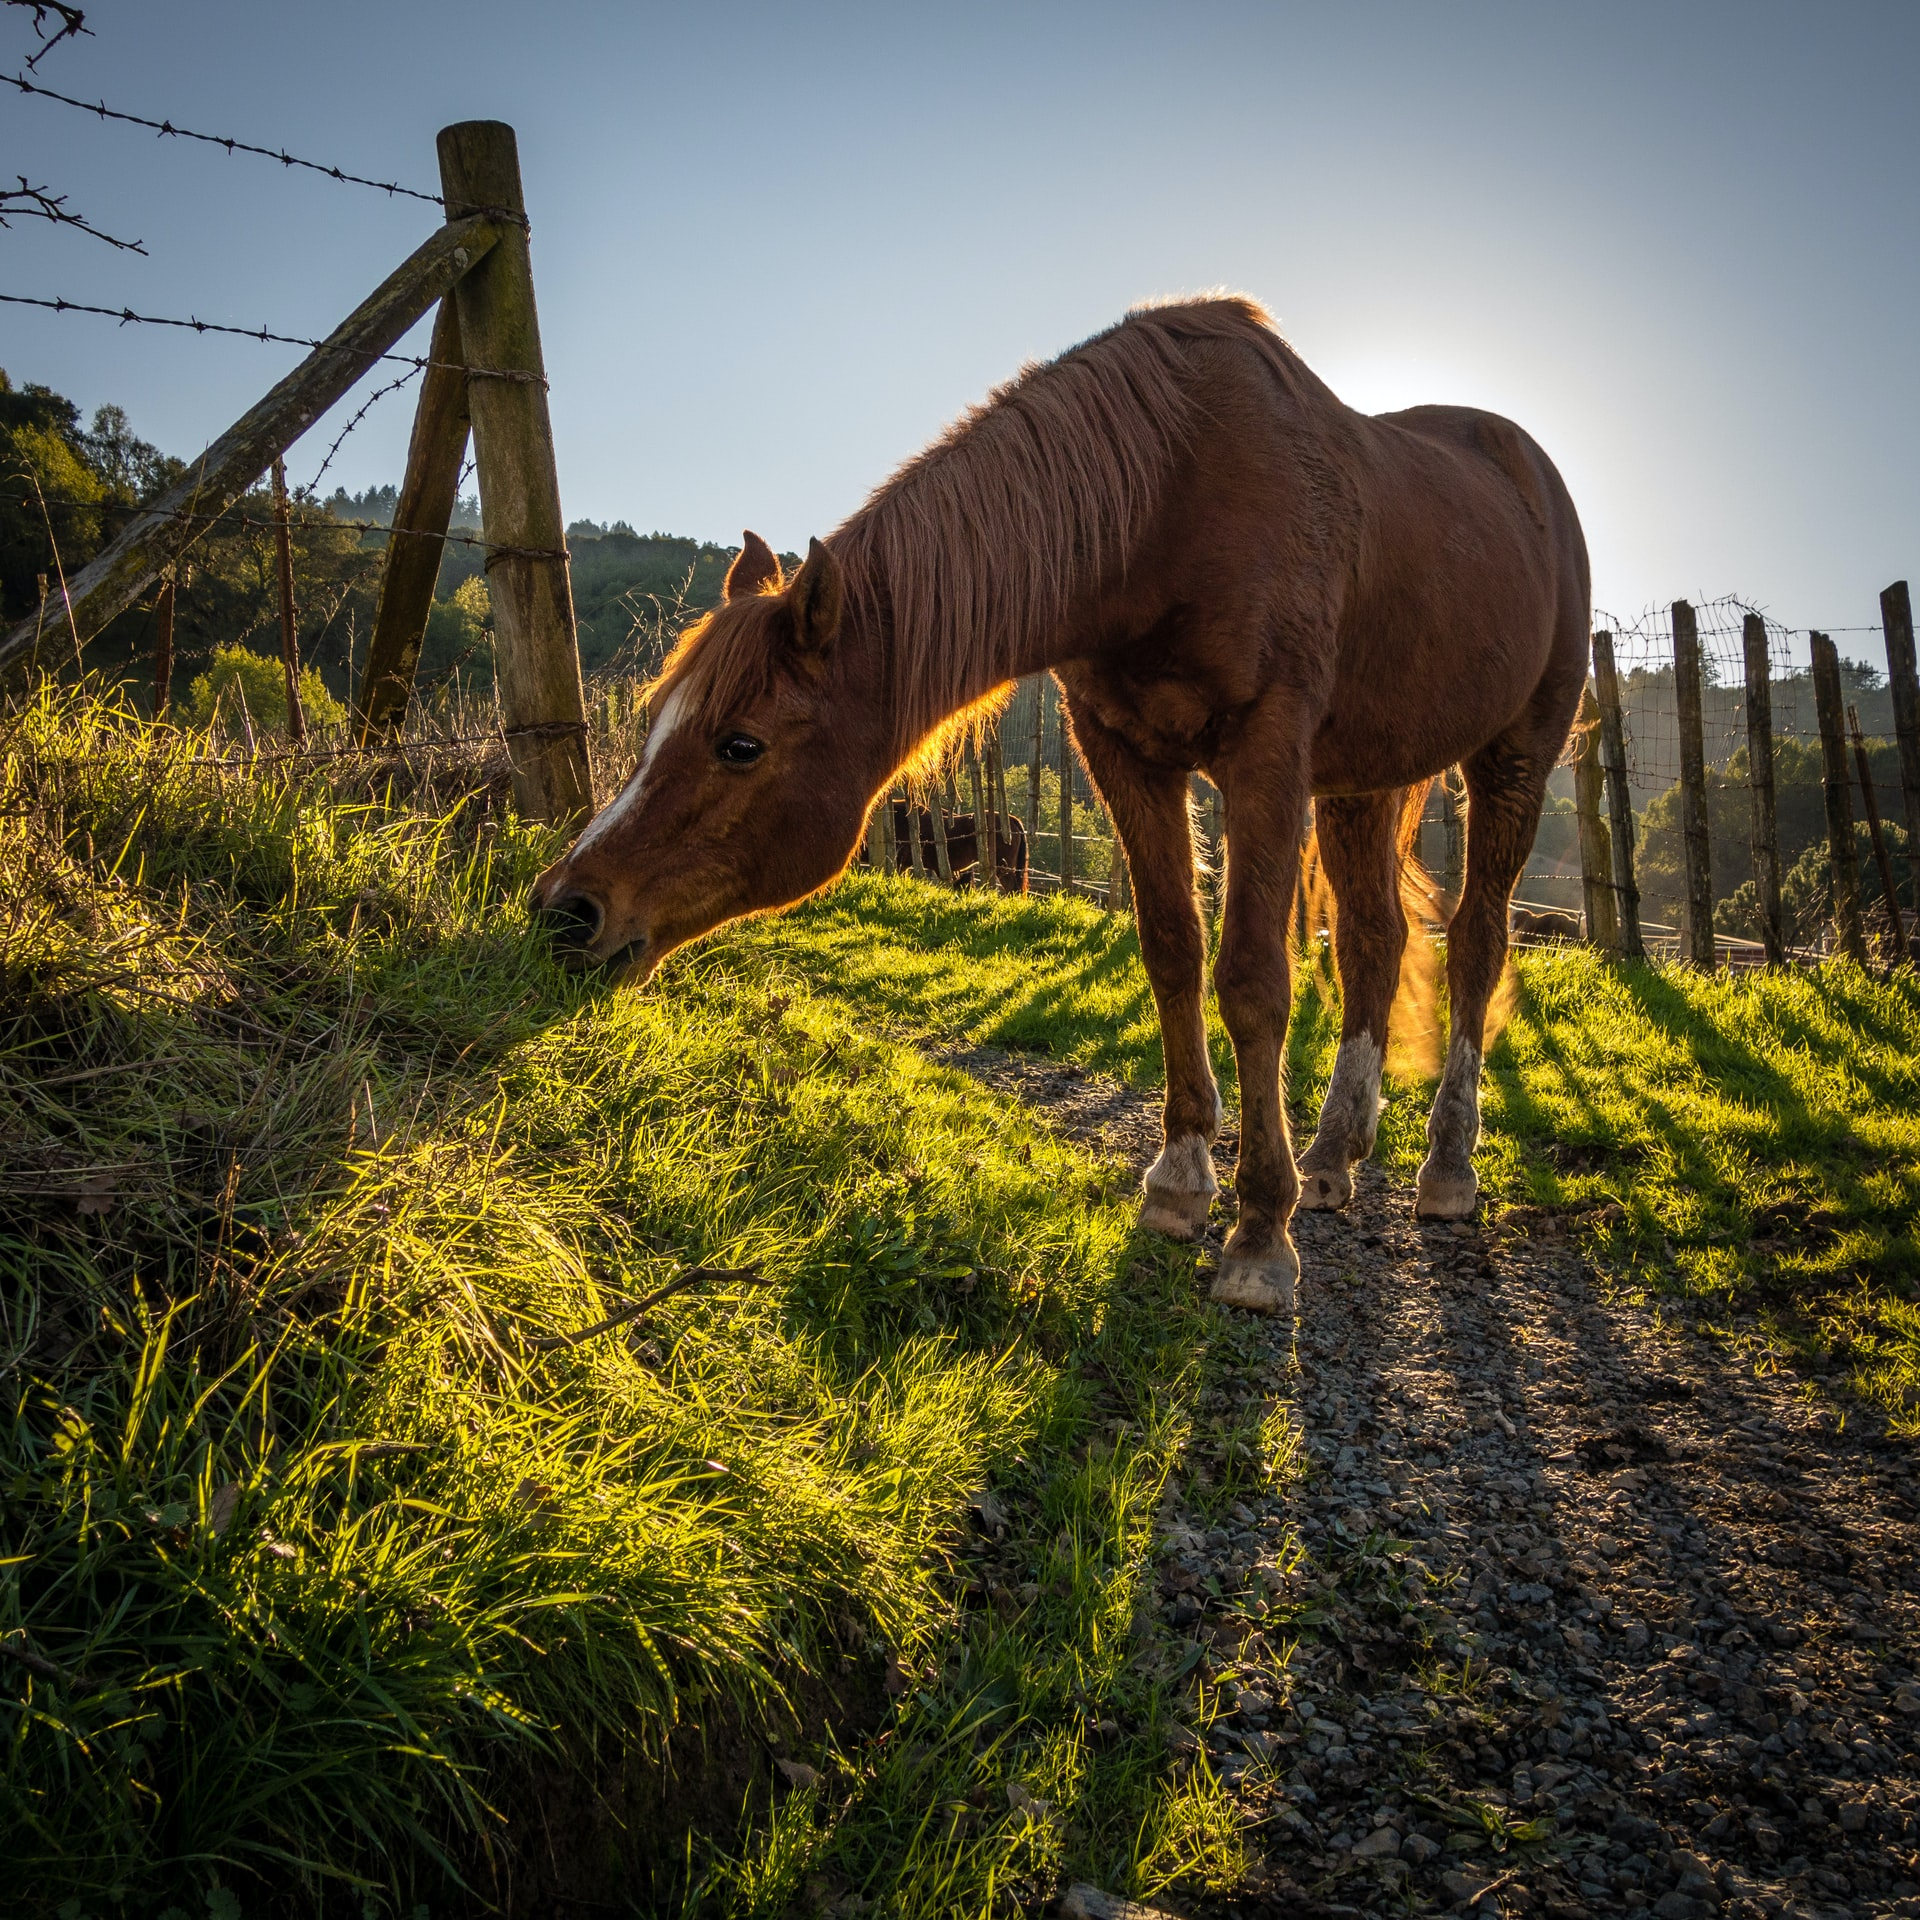 5 Reasons Horses Eat Dirt: And What You Should (or Shouldn't) Do About It